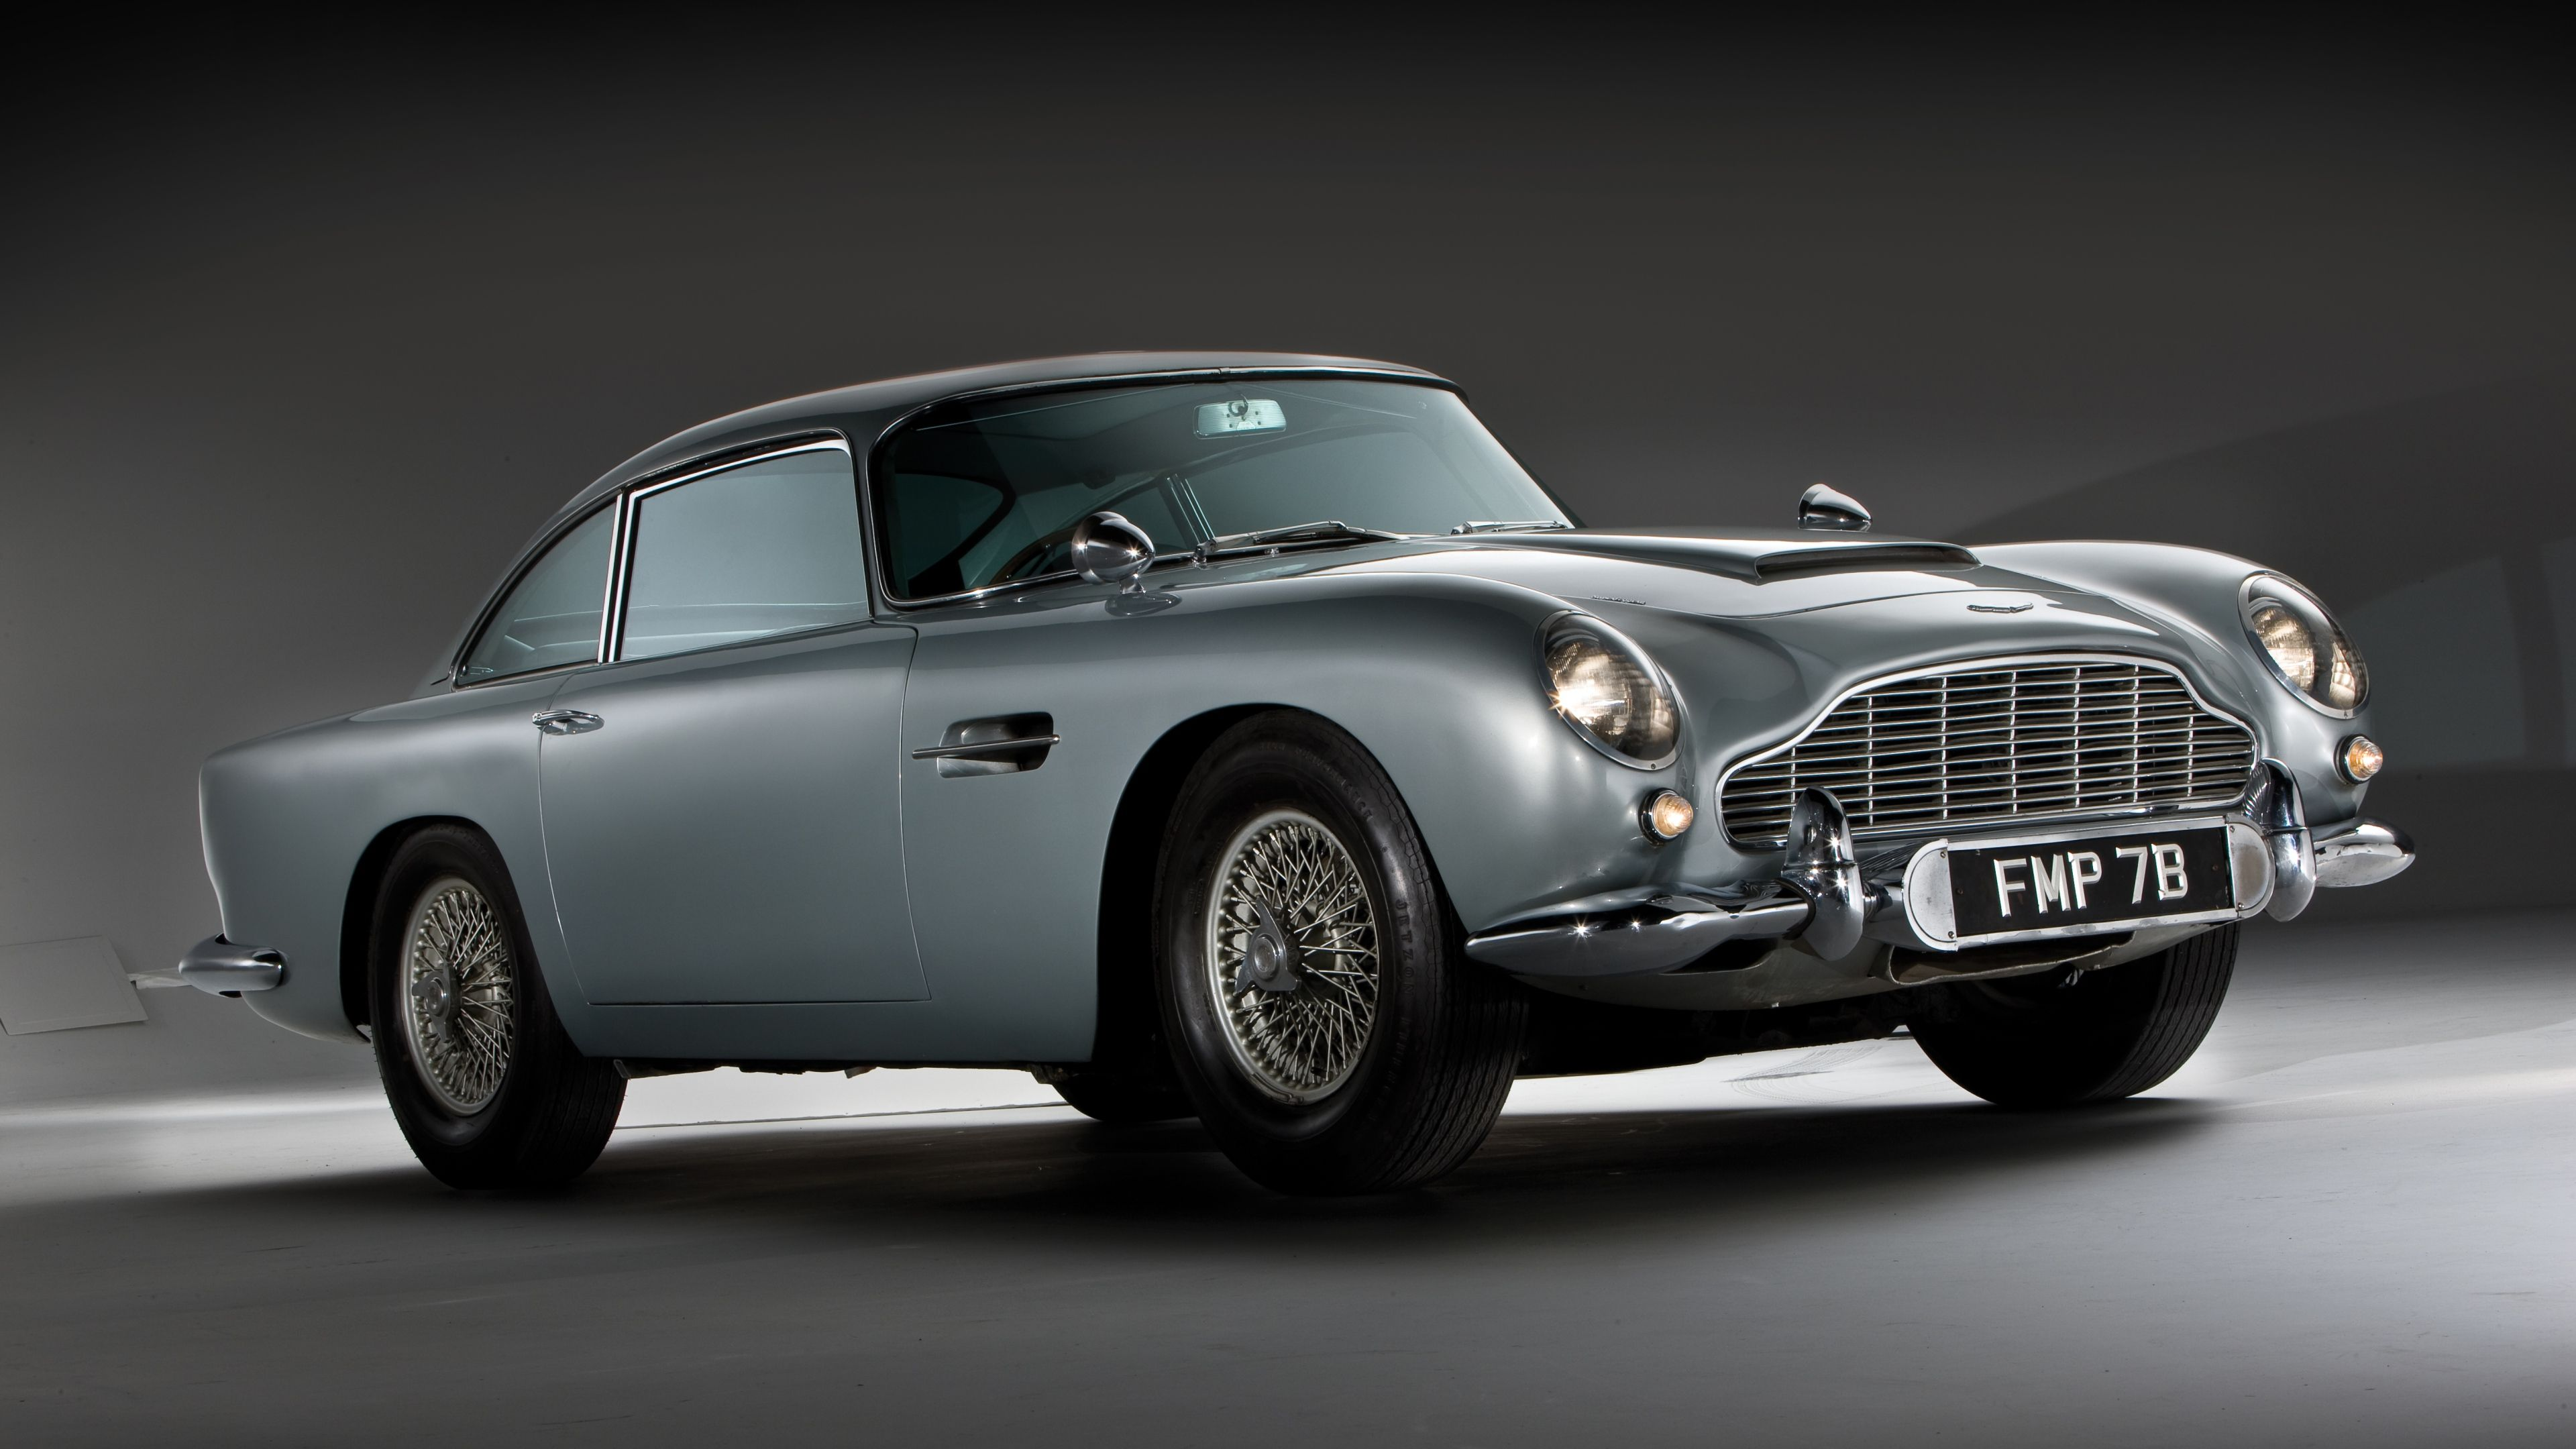 3840x2160 Wallpaper aston martin, db5, 1964, side view